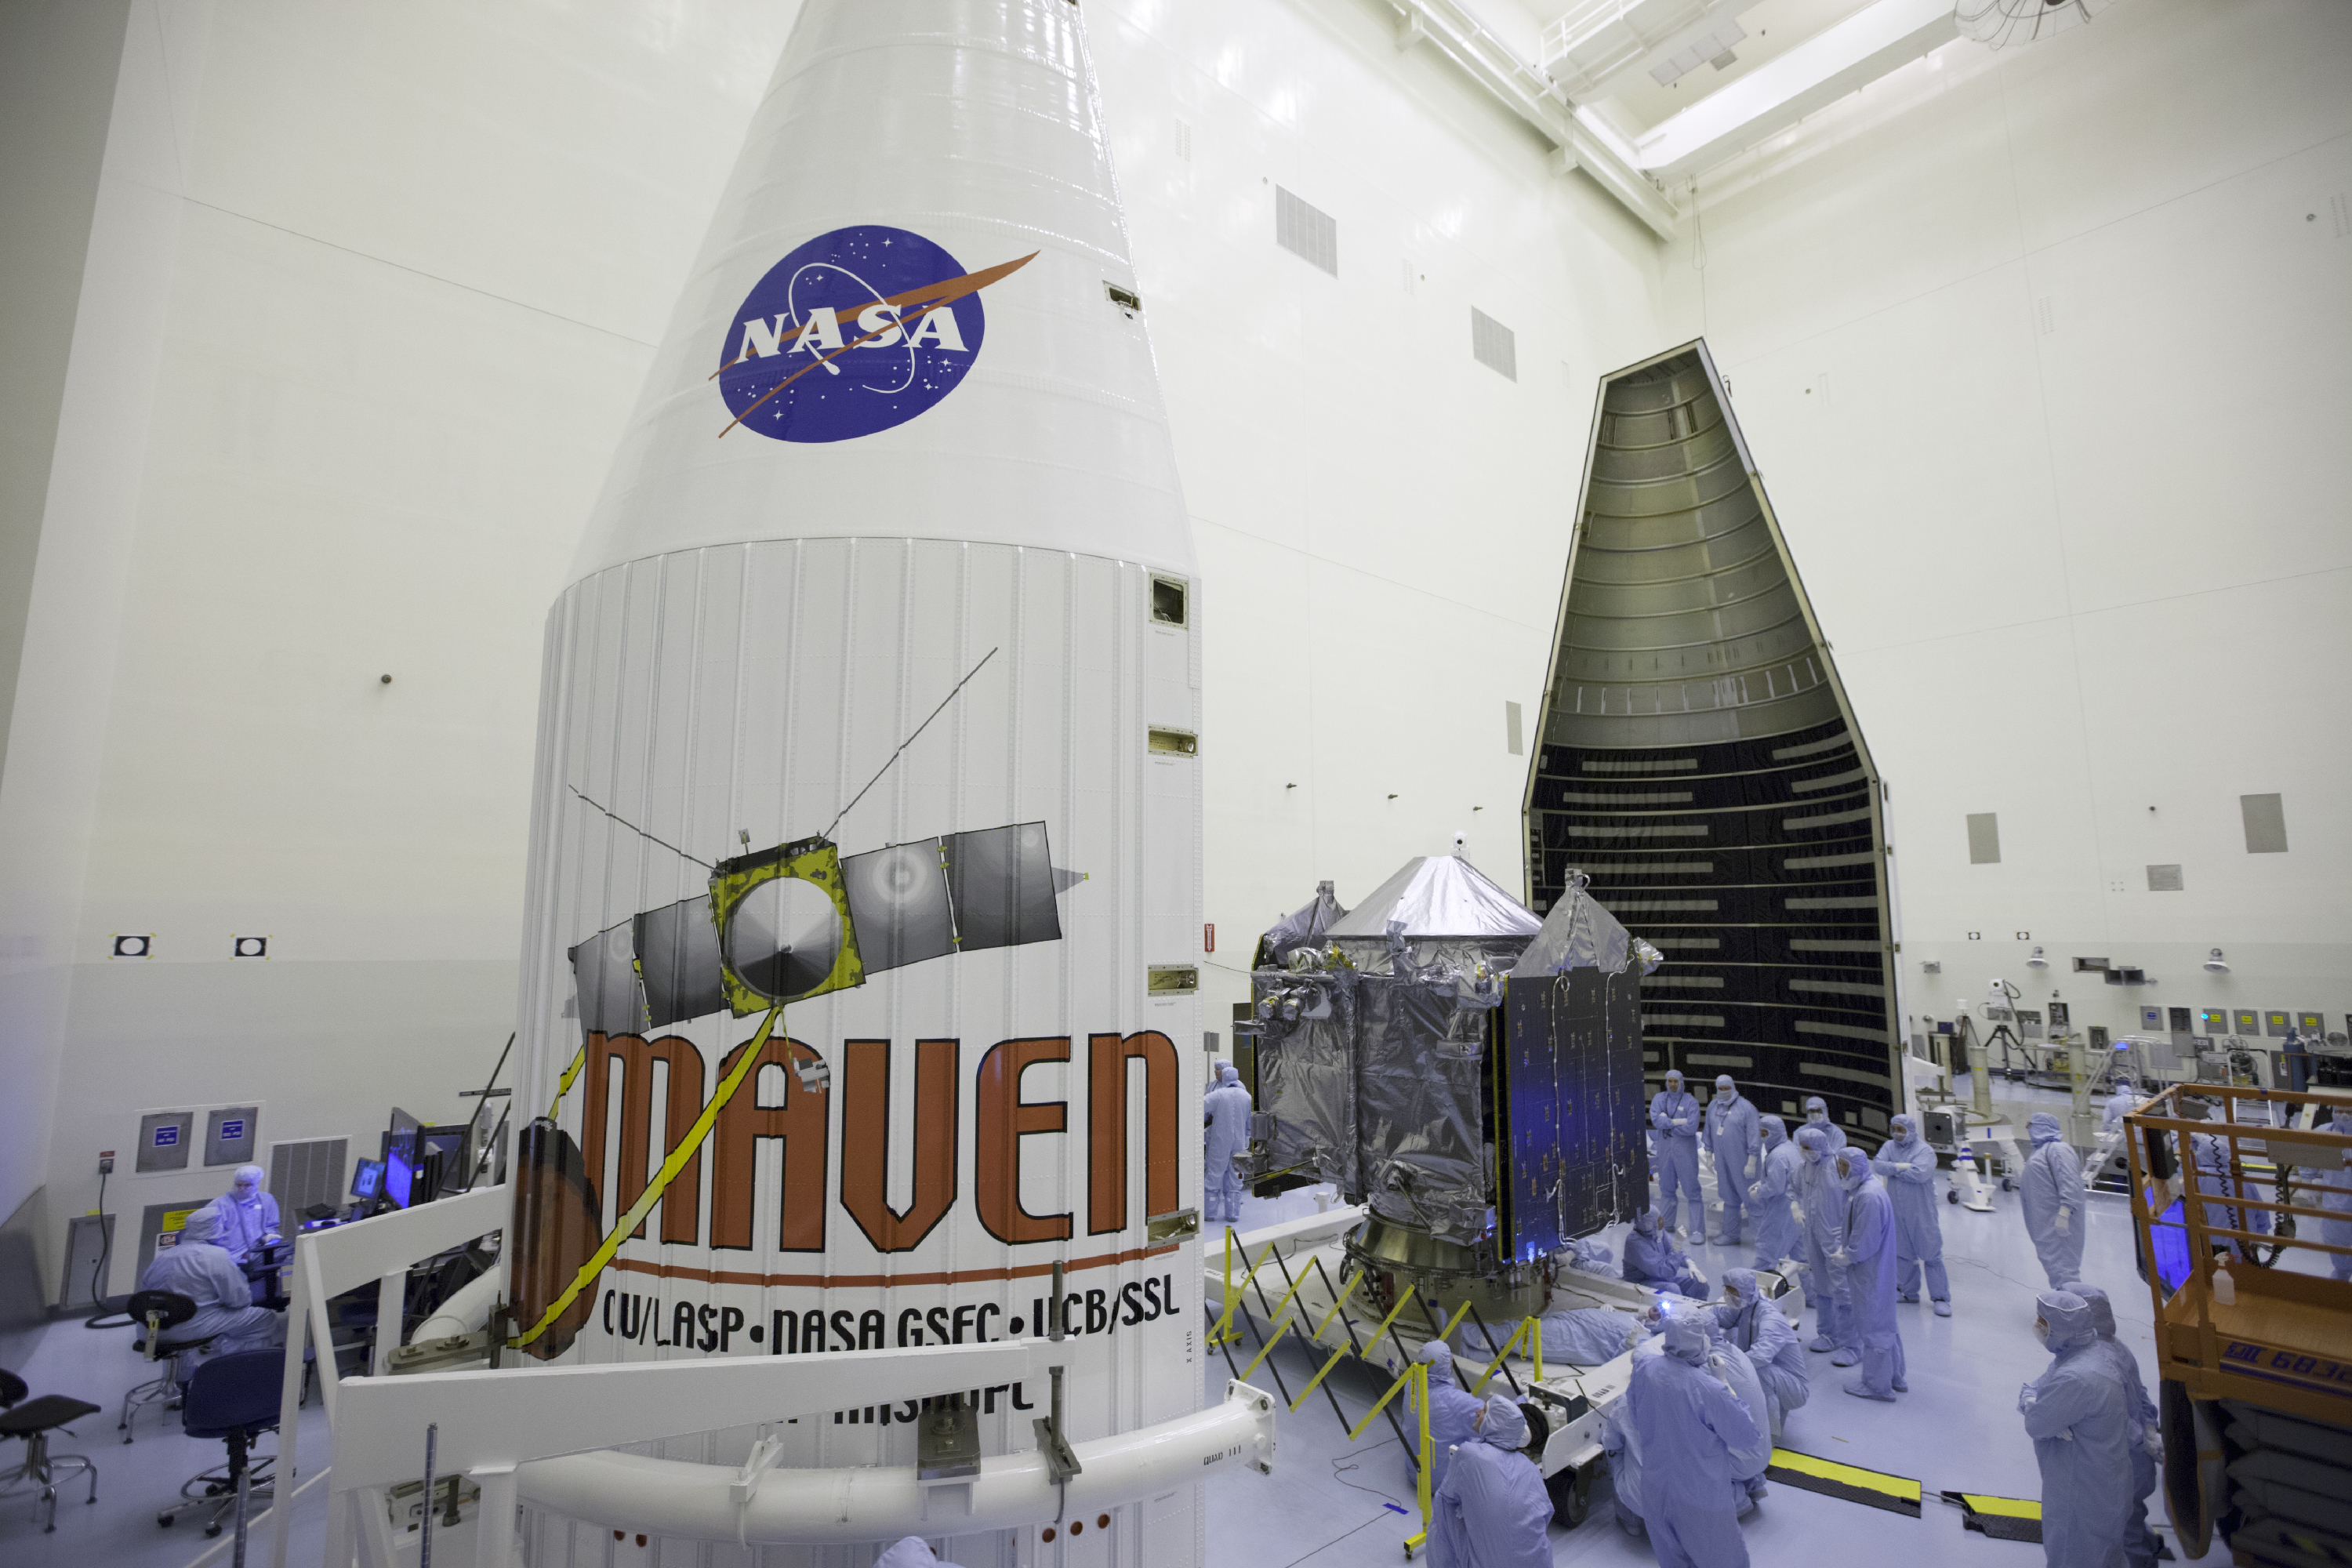 maven nasa - photo #20